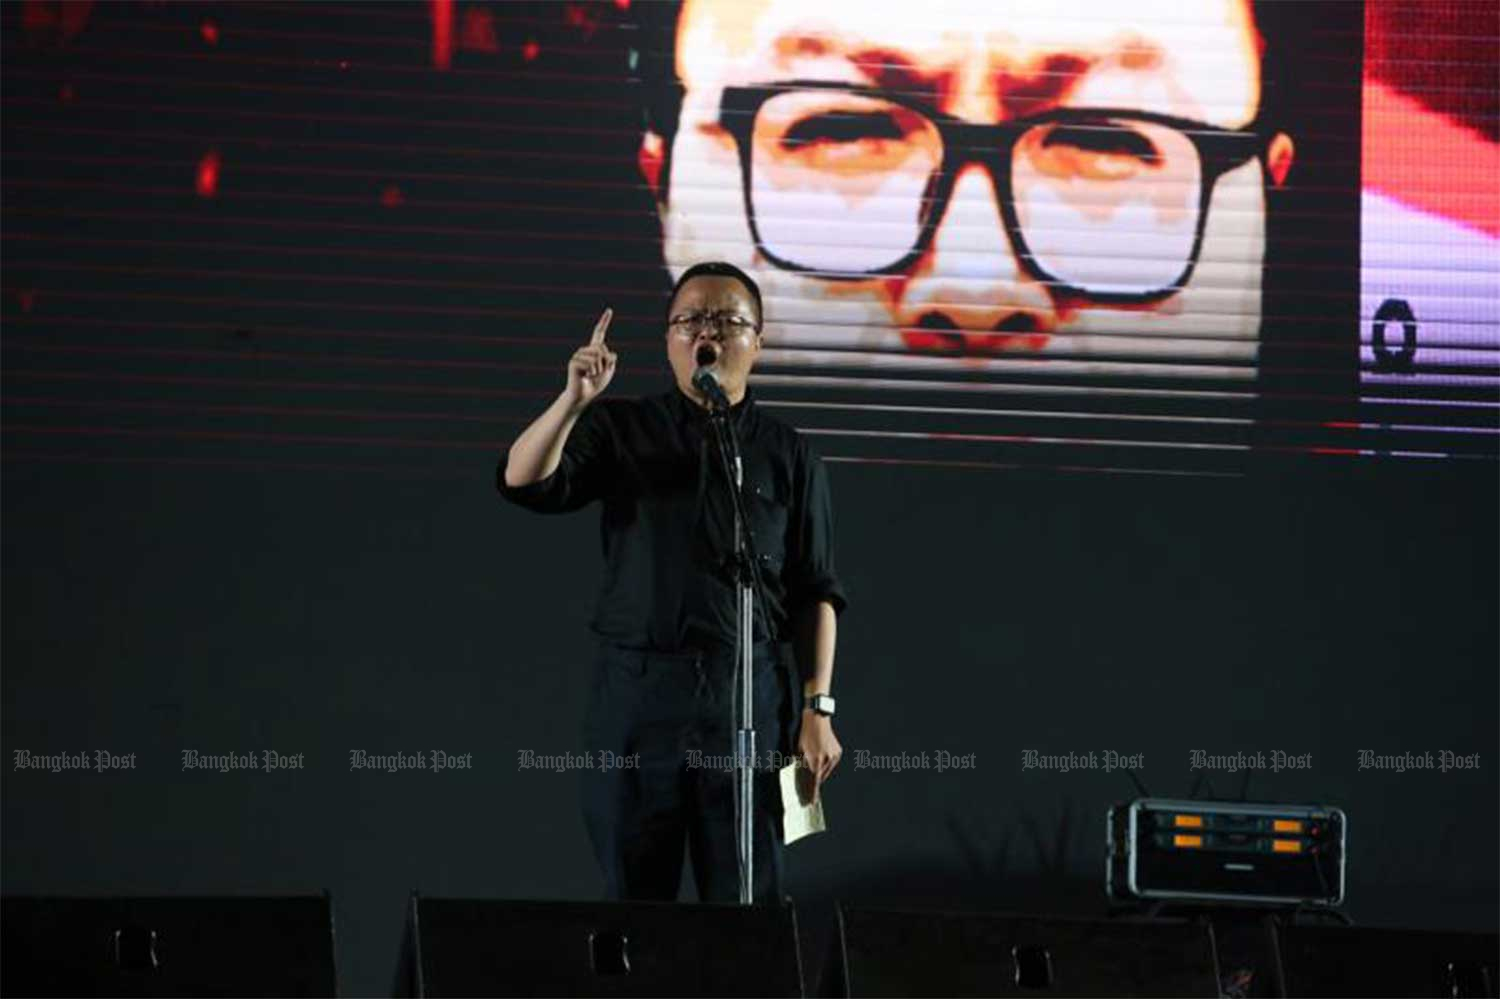 Arnon Nampha on the stage during the rally at Sanam Luang on Sept 19. (Photo: Amornthep Chotchalermpong)